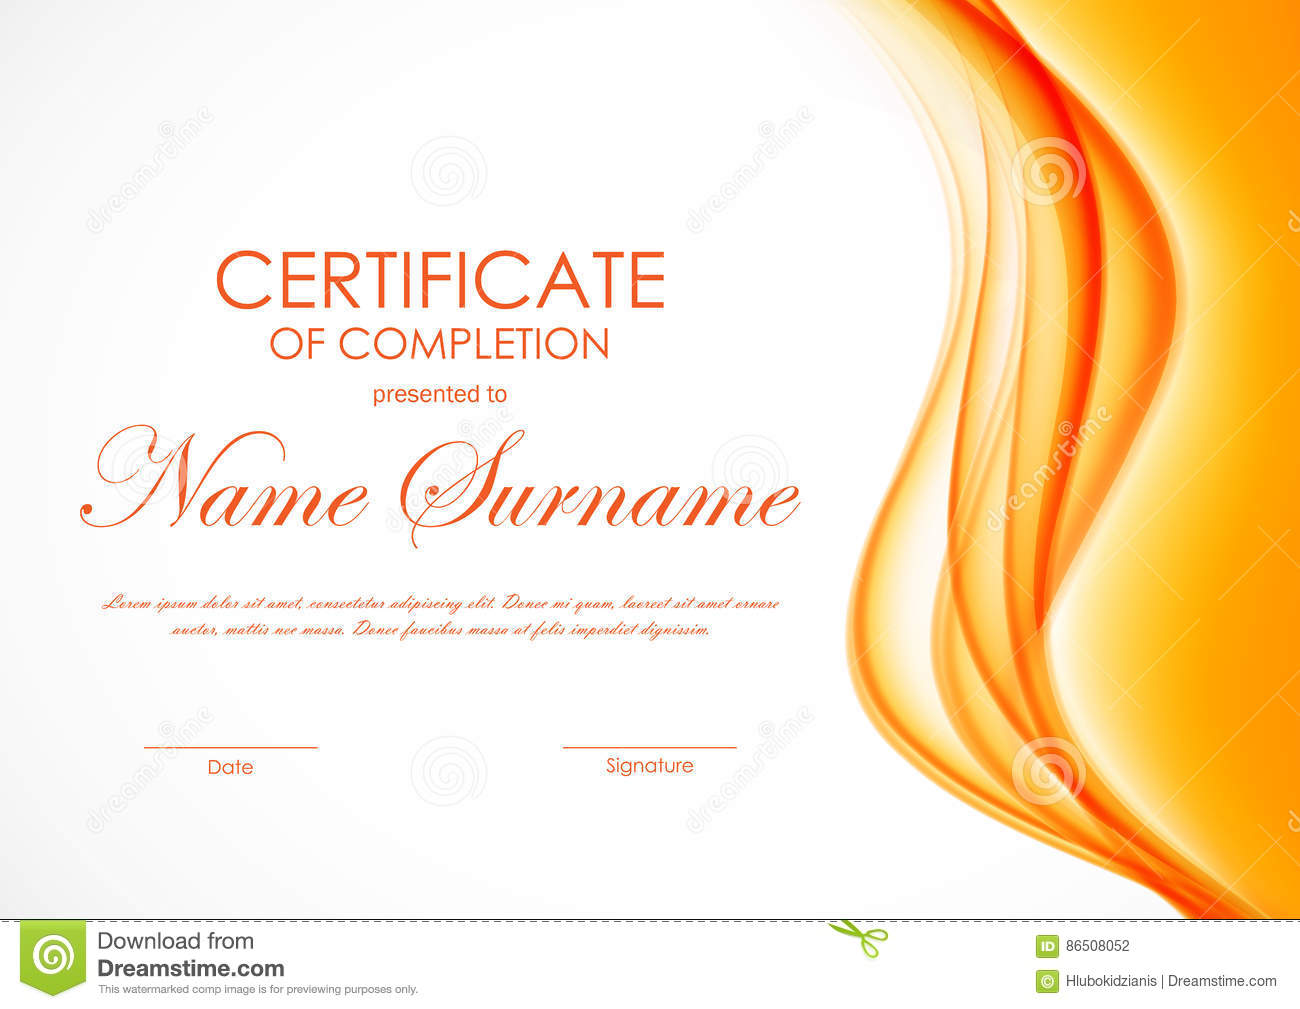 Certificate of completion template stock vector image 86508052 certificate of completion template yadclub Images